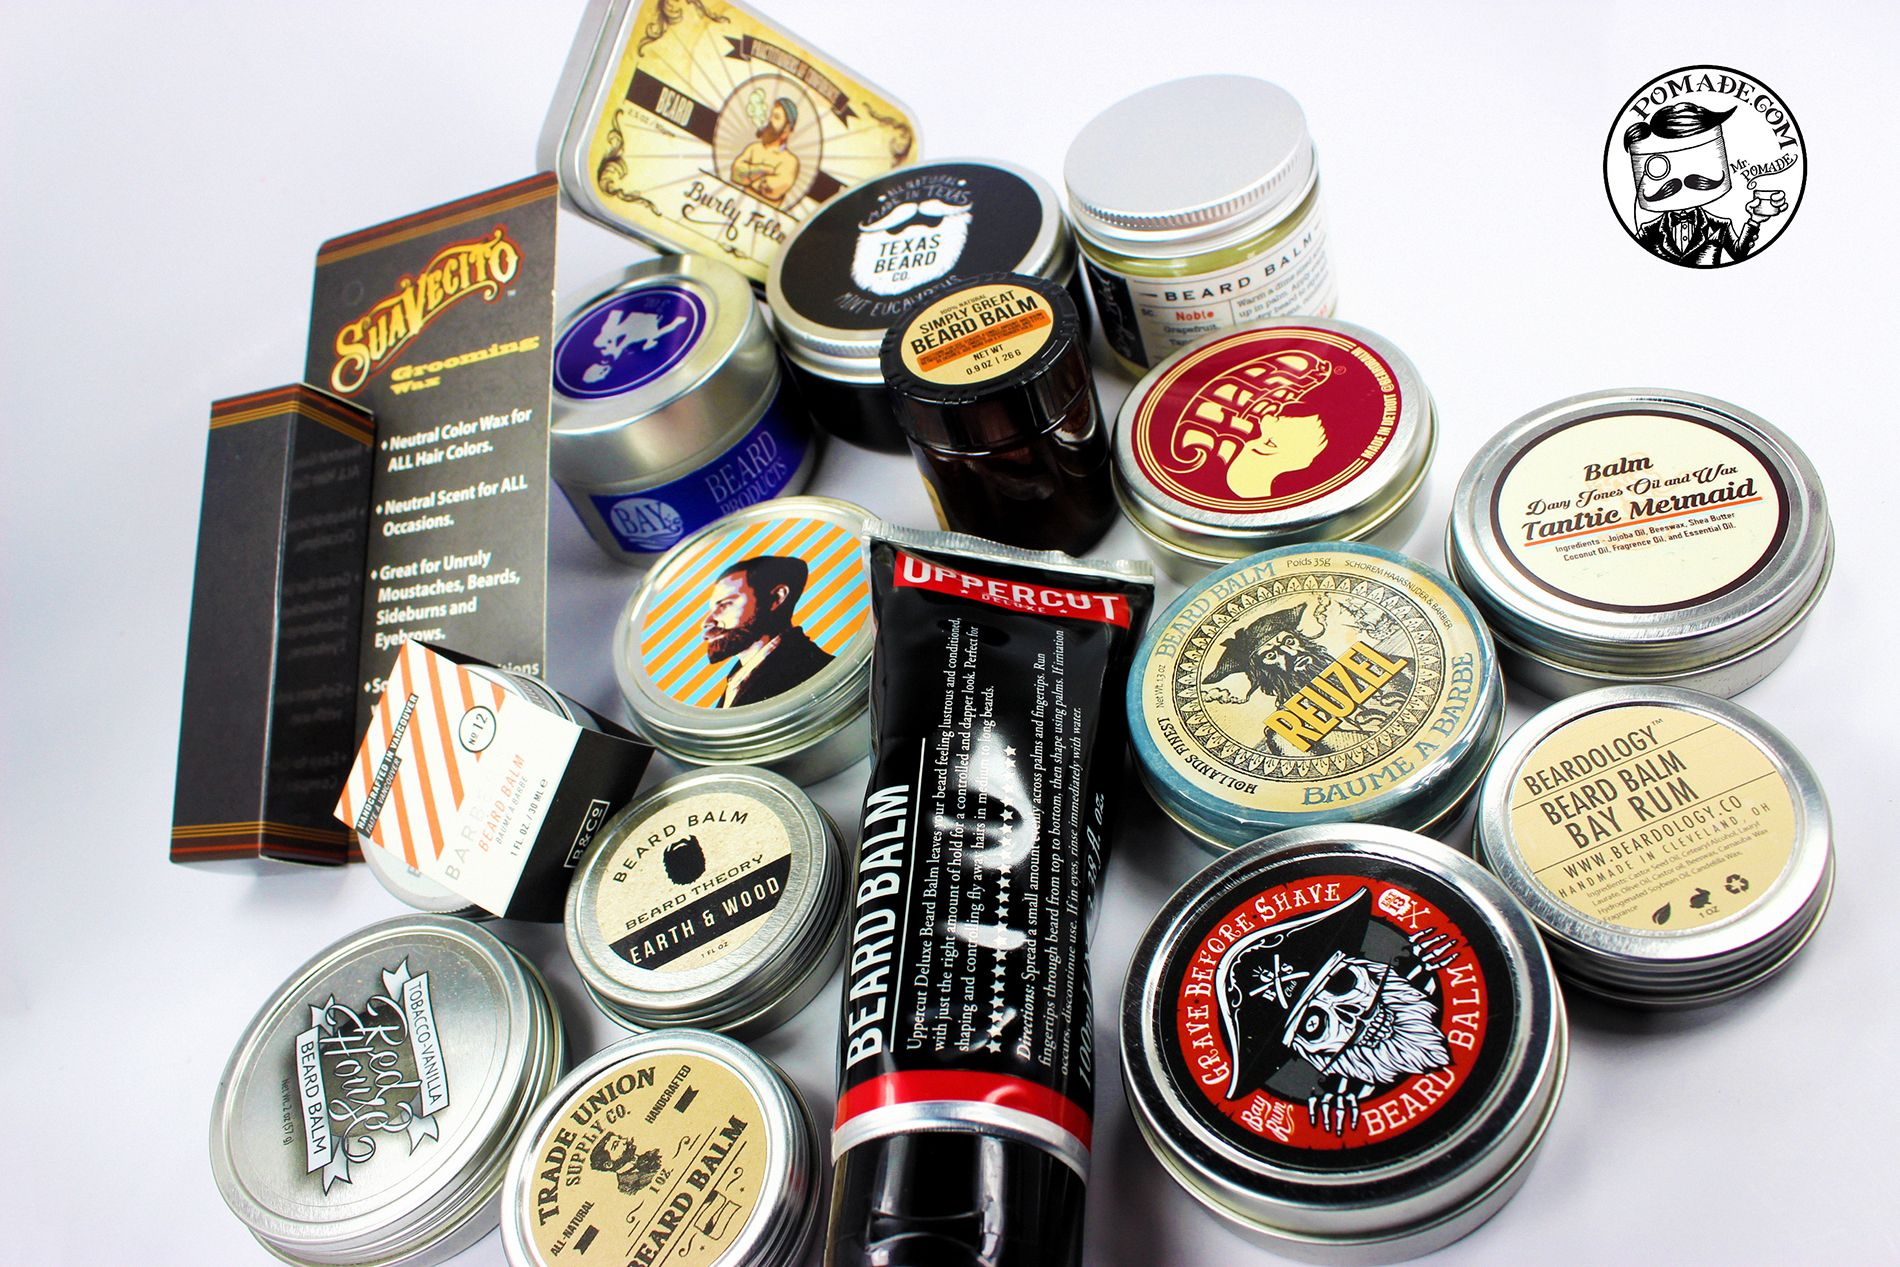 """Beard Balm da bang a dang diggy diggy diggy said the boogy said up jump the boogy."" -Kid Rock #beardbalm"